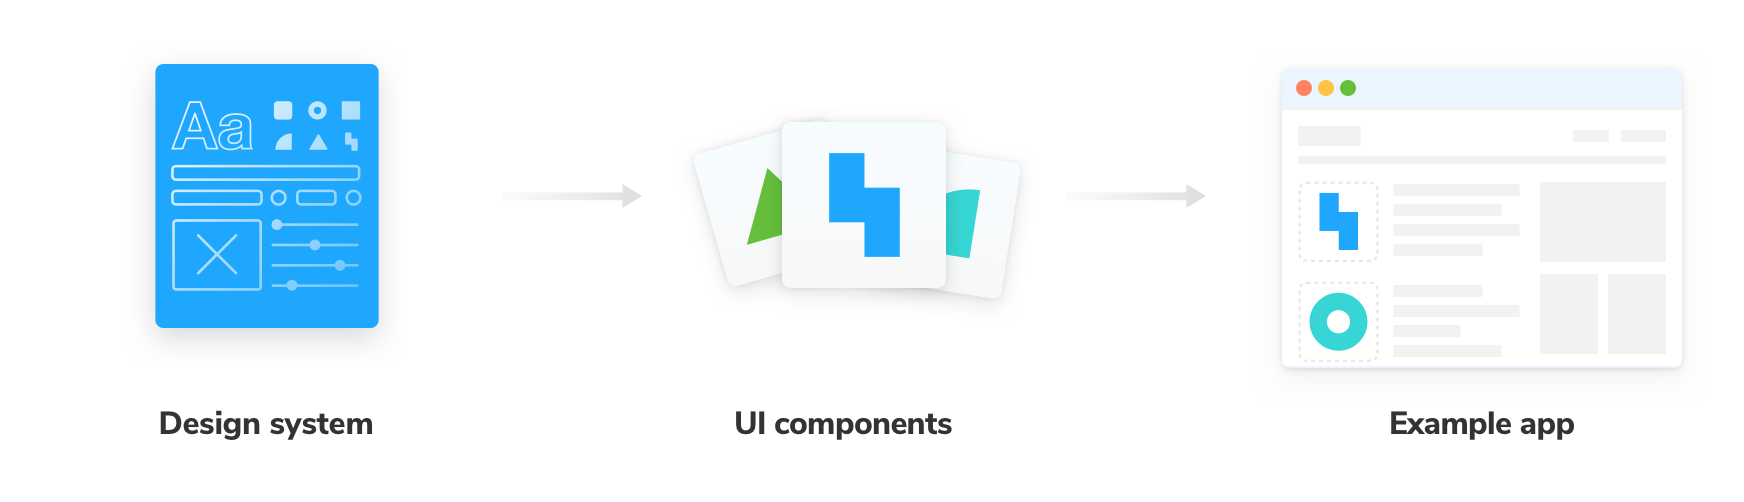 Import the design system